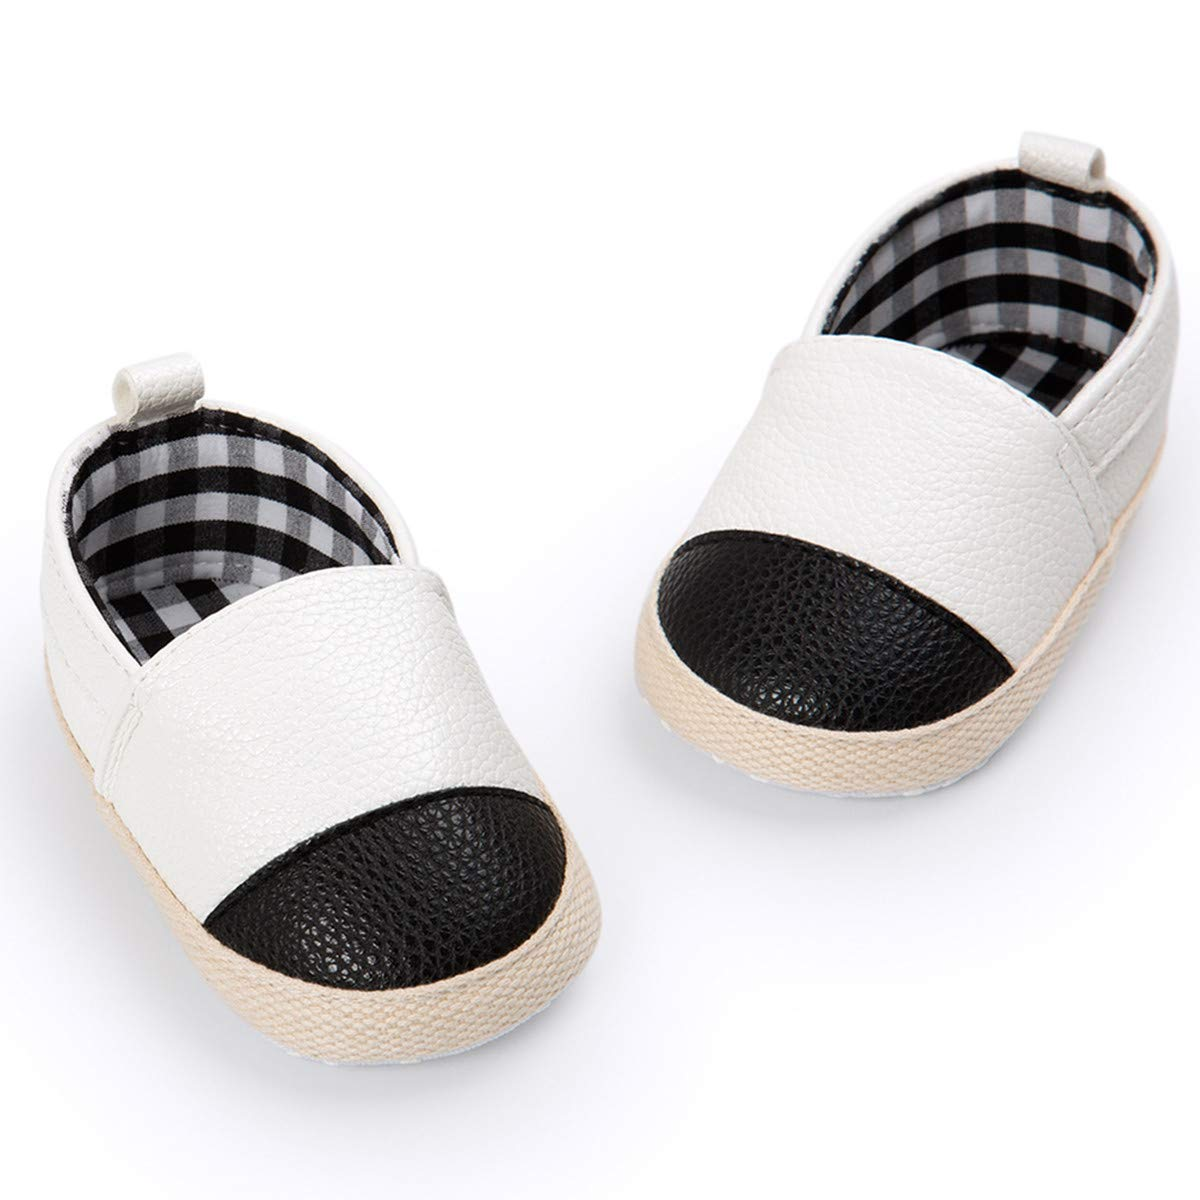 BENHERO Infant Baby Boys Girls Canvas Shoes Slip On Soft Sole Moccasins Toddler First Walker Sneaker Newborn Crib Shoes